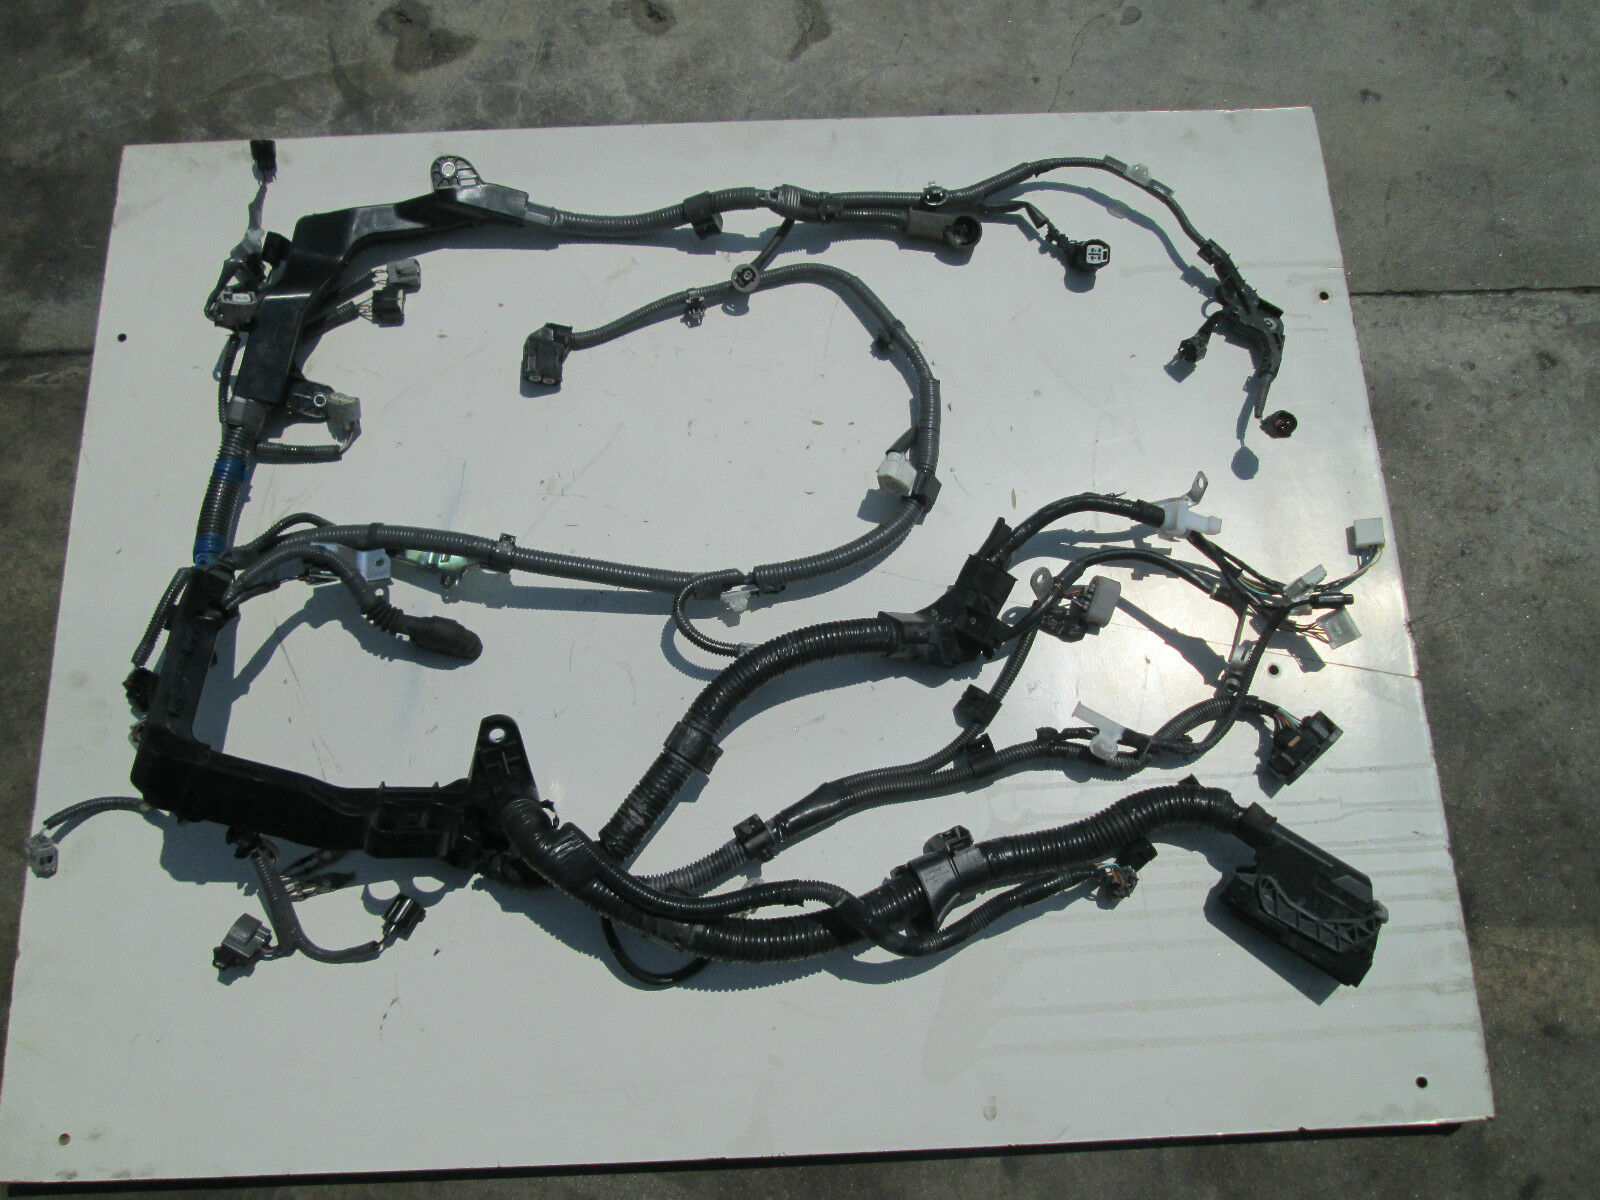 1994 Toyota Pickup Wiring Diagram Trailer Lights Free 1978 Hilux Engine 2012 Camry Harness 32 94